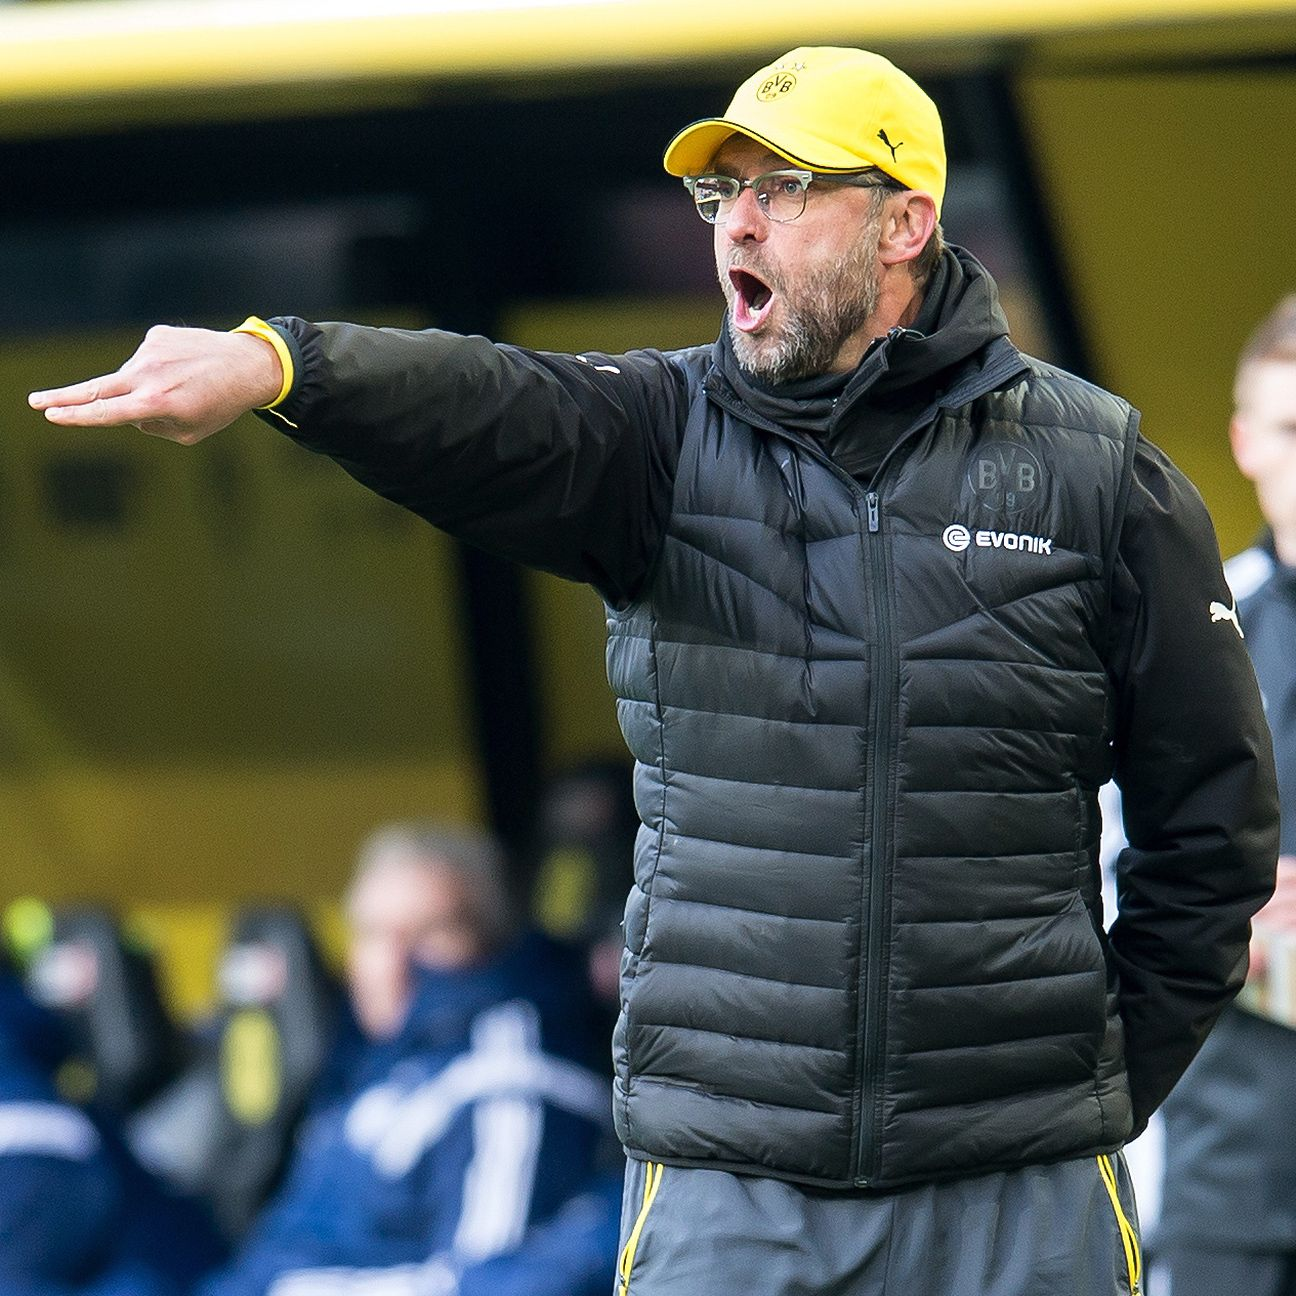 Jurgen Klopp's Dortmund side have a habit of departing Hamburg with little to show for it.